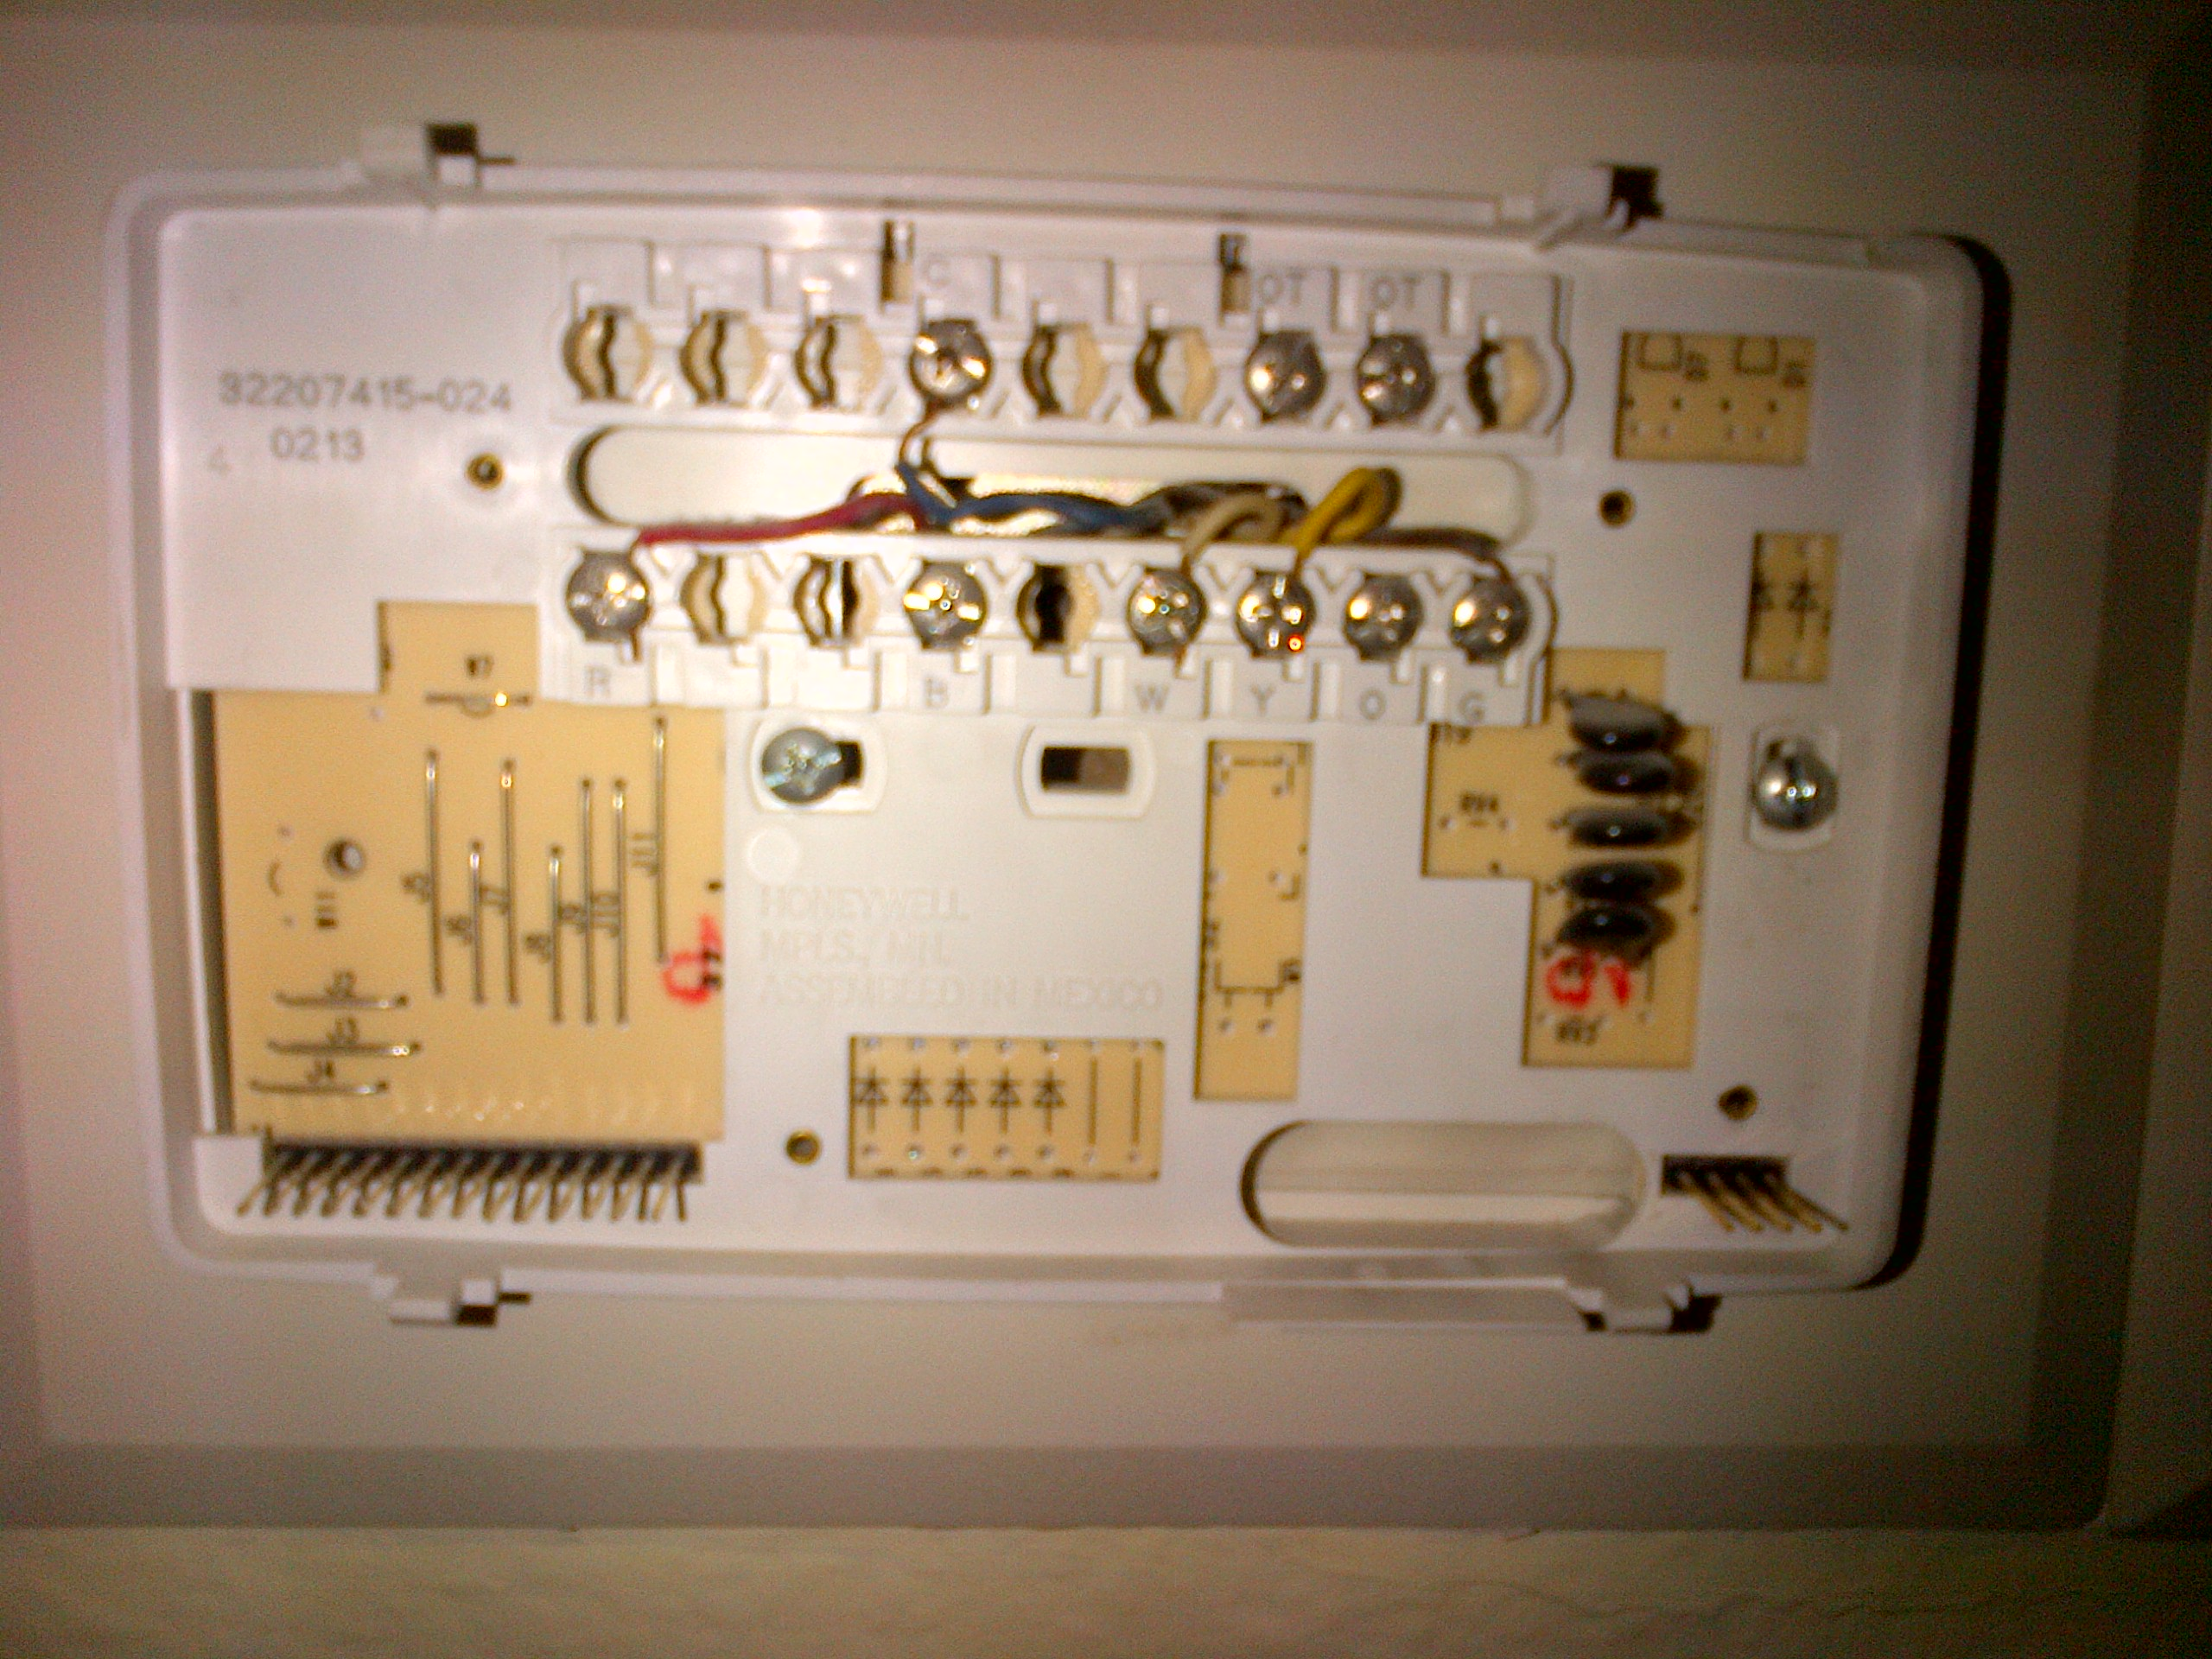 honeywell chronotherm iii wiring diagram old honeywell honeywell chronotherm iii the honeywell chnronotherm iii